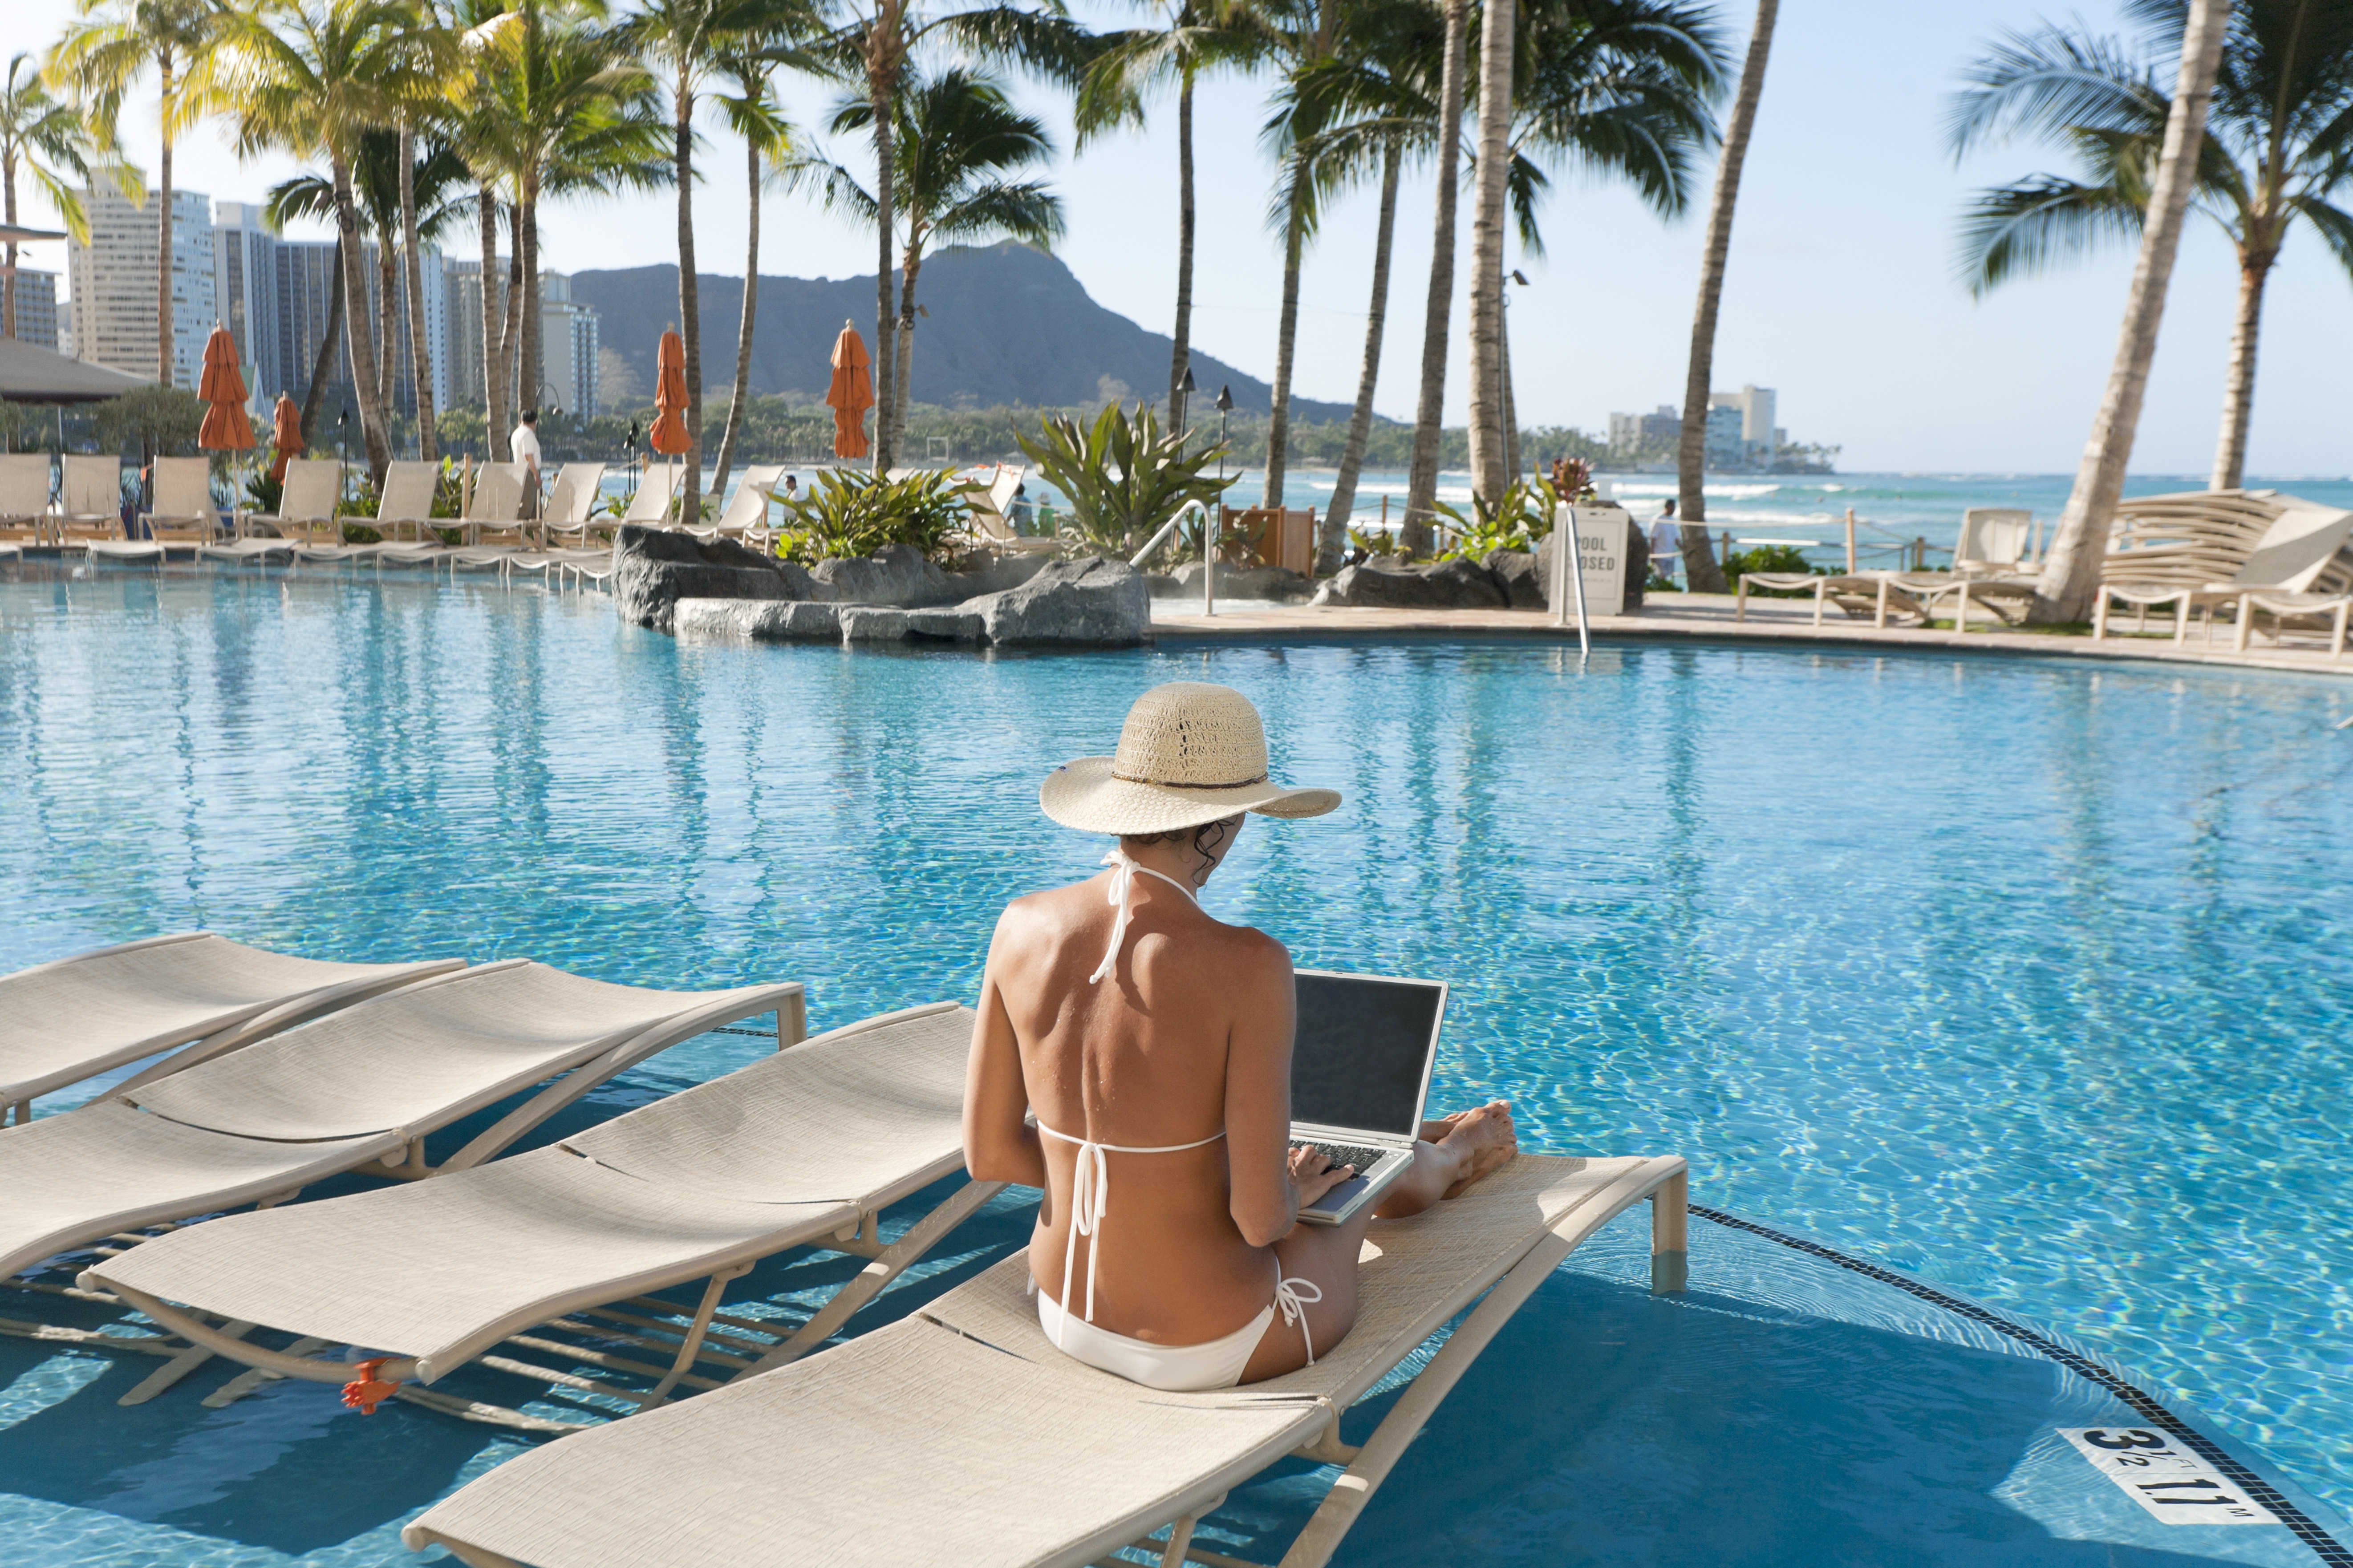 More than half of Americans can't unplug from work during their vacations.